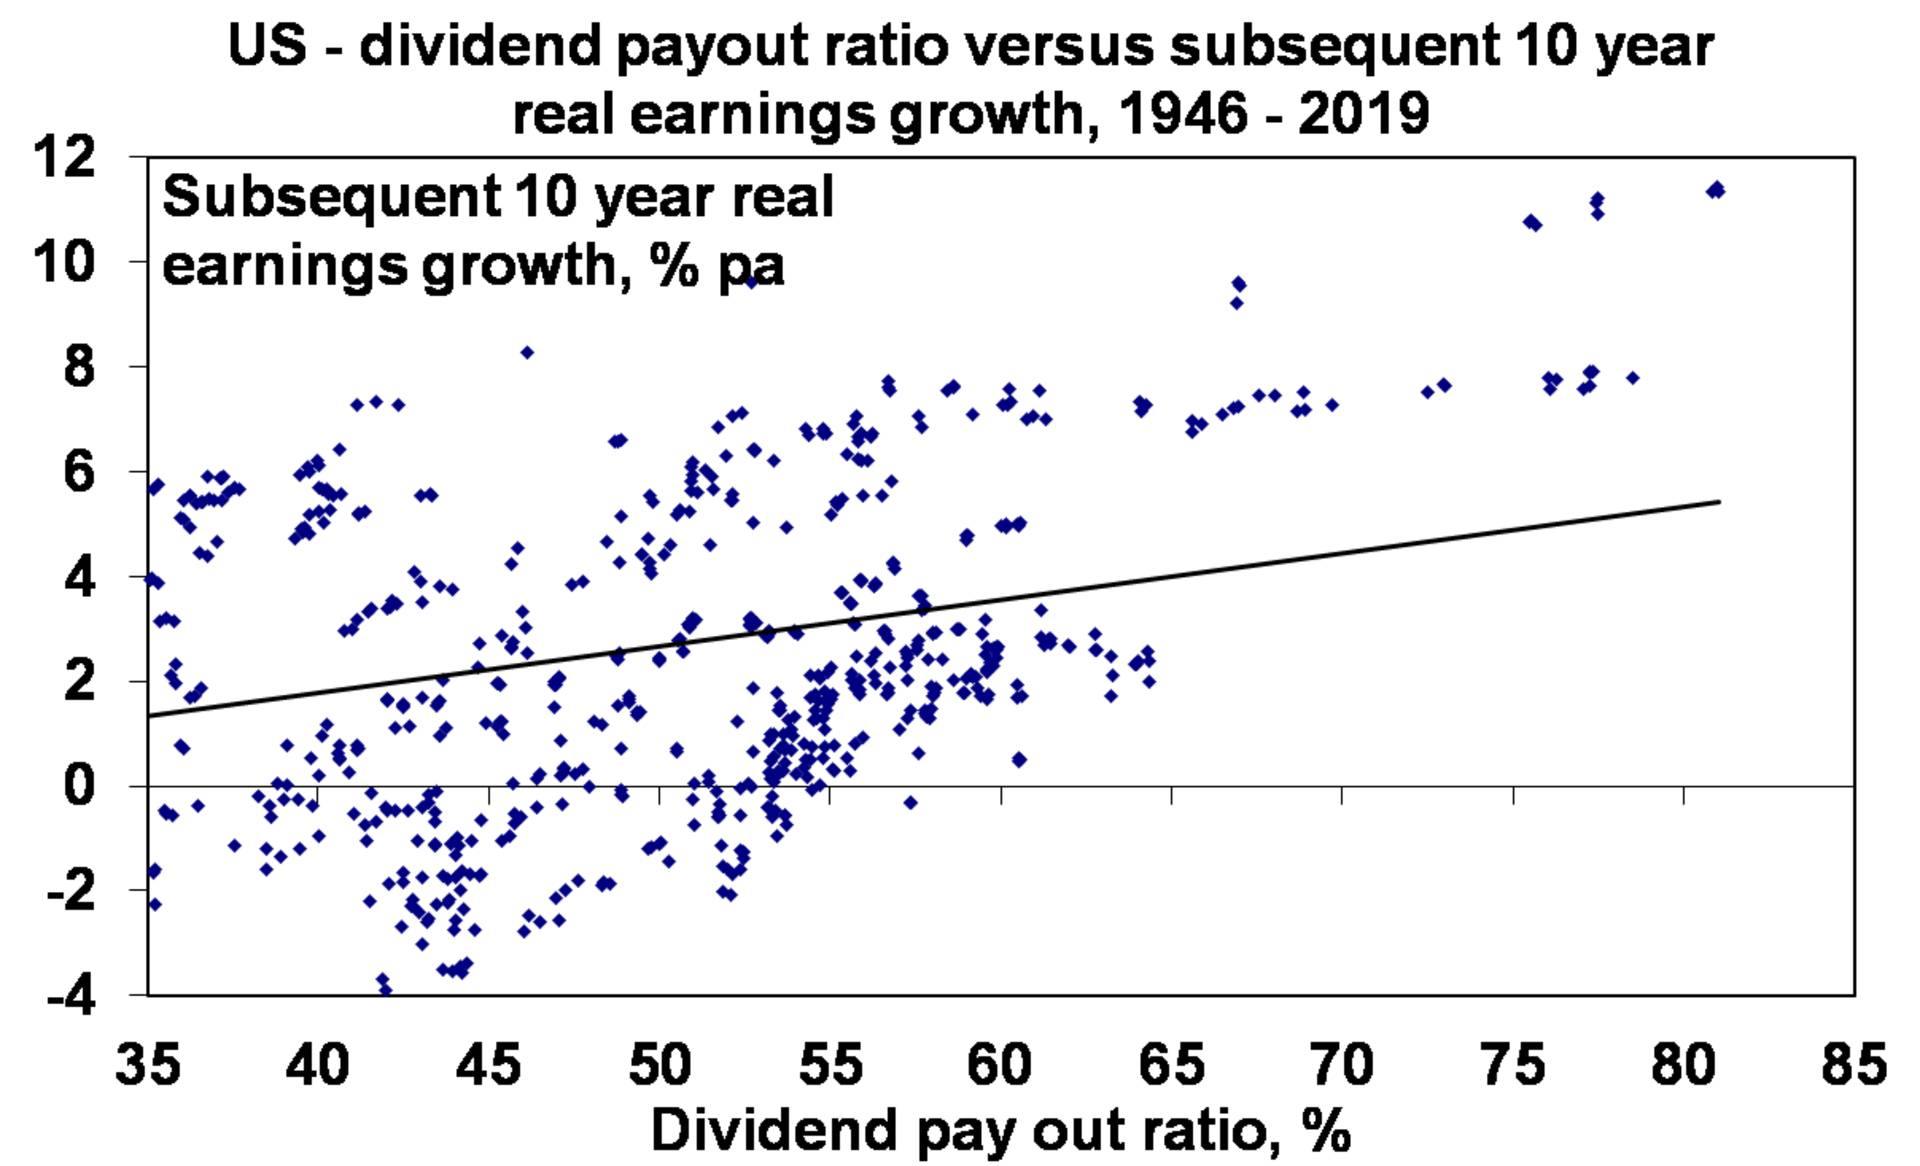 US - dividend payout ratio versus subsequent 10 year real earnings growth, 1946 - 2019